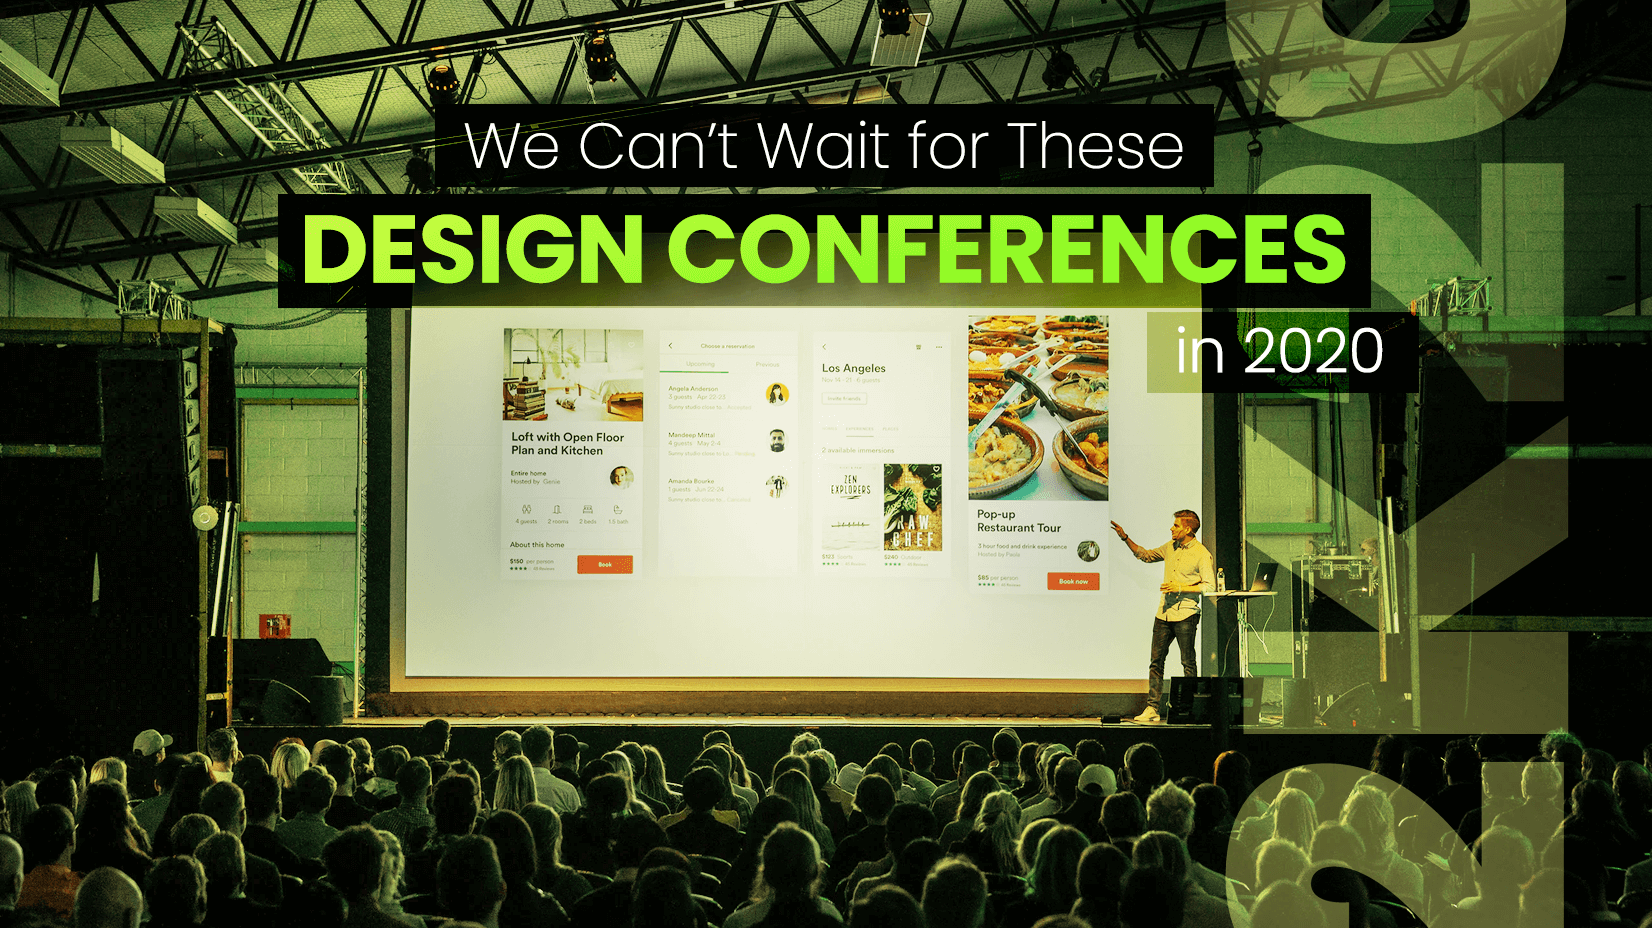 Top Design Conferences in 2020